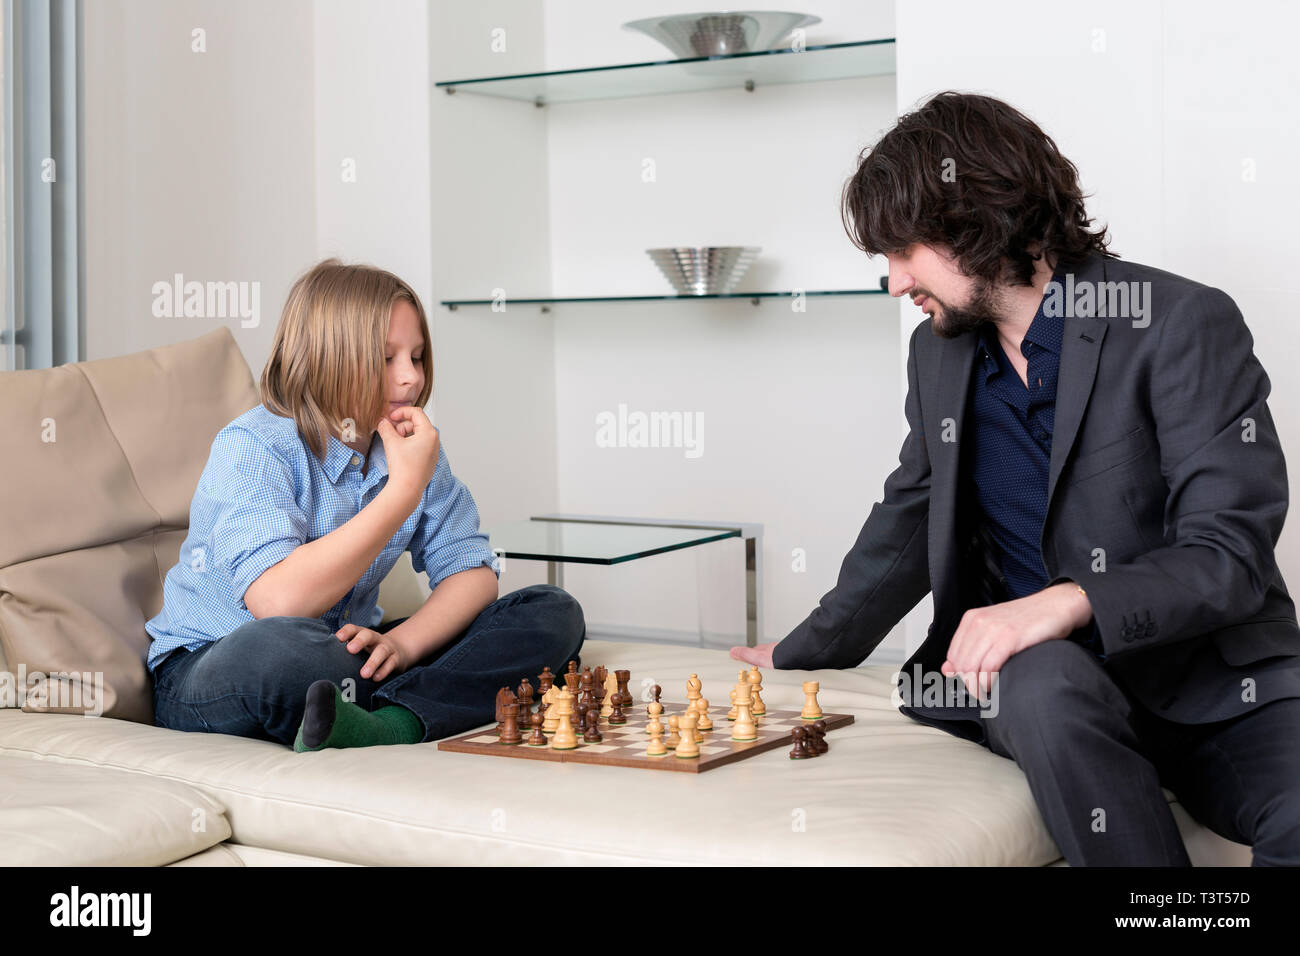 Caucasian father and son playing chess on sofa - Stock Image